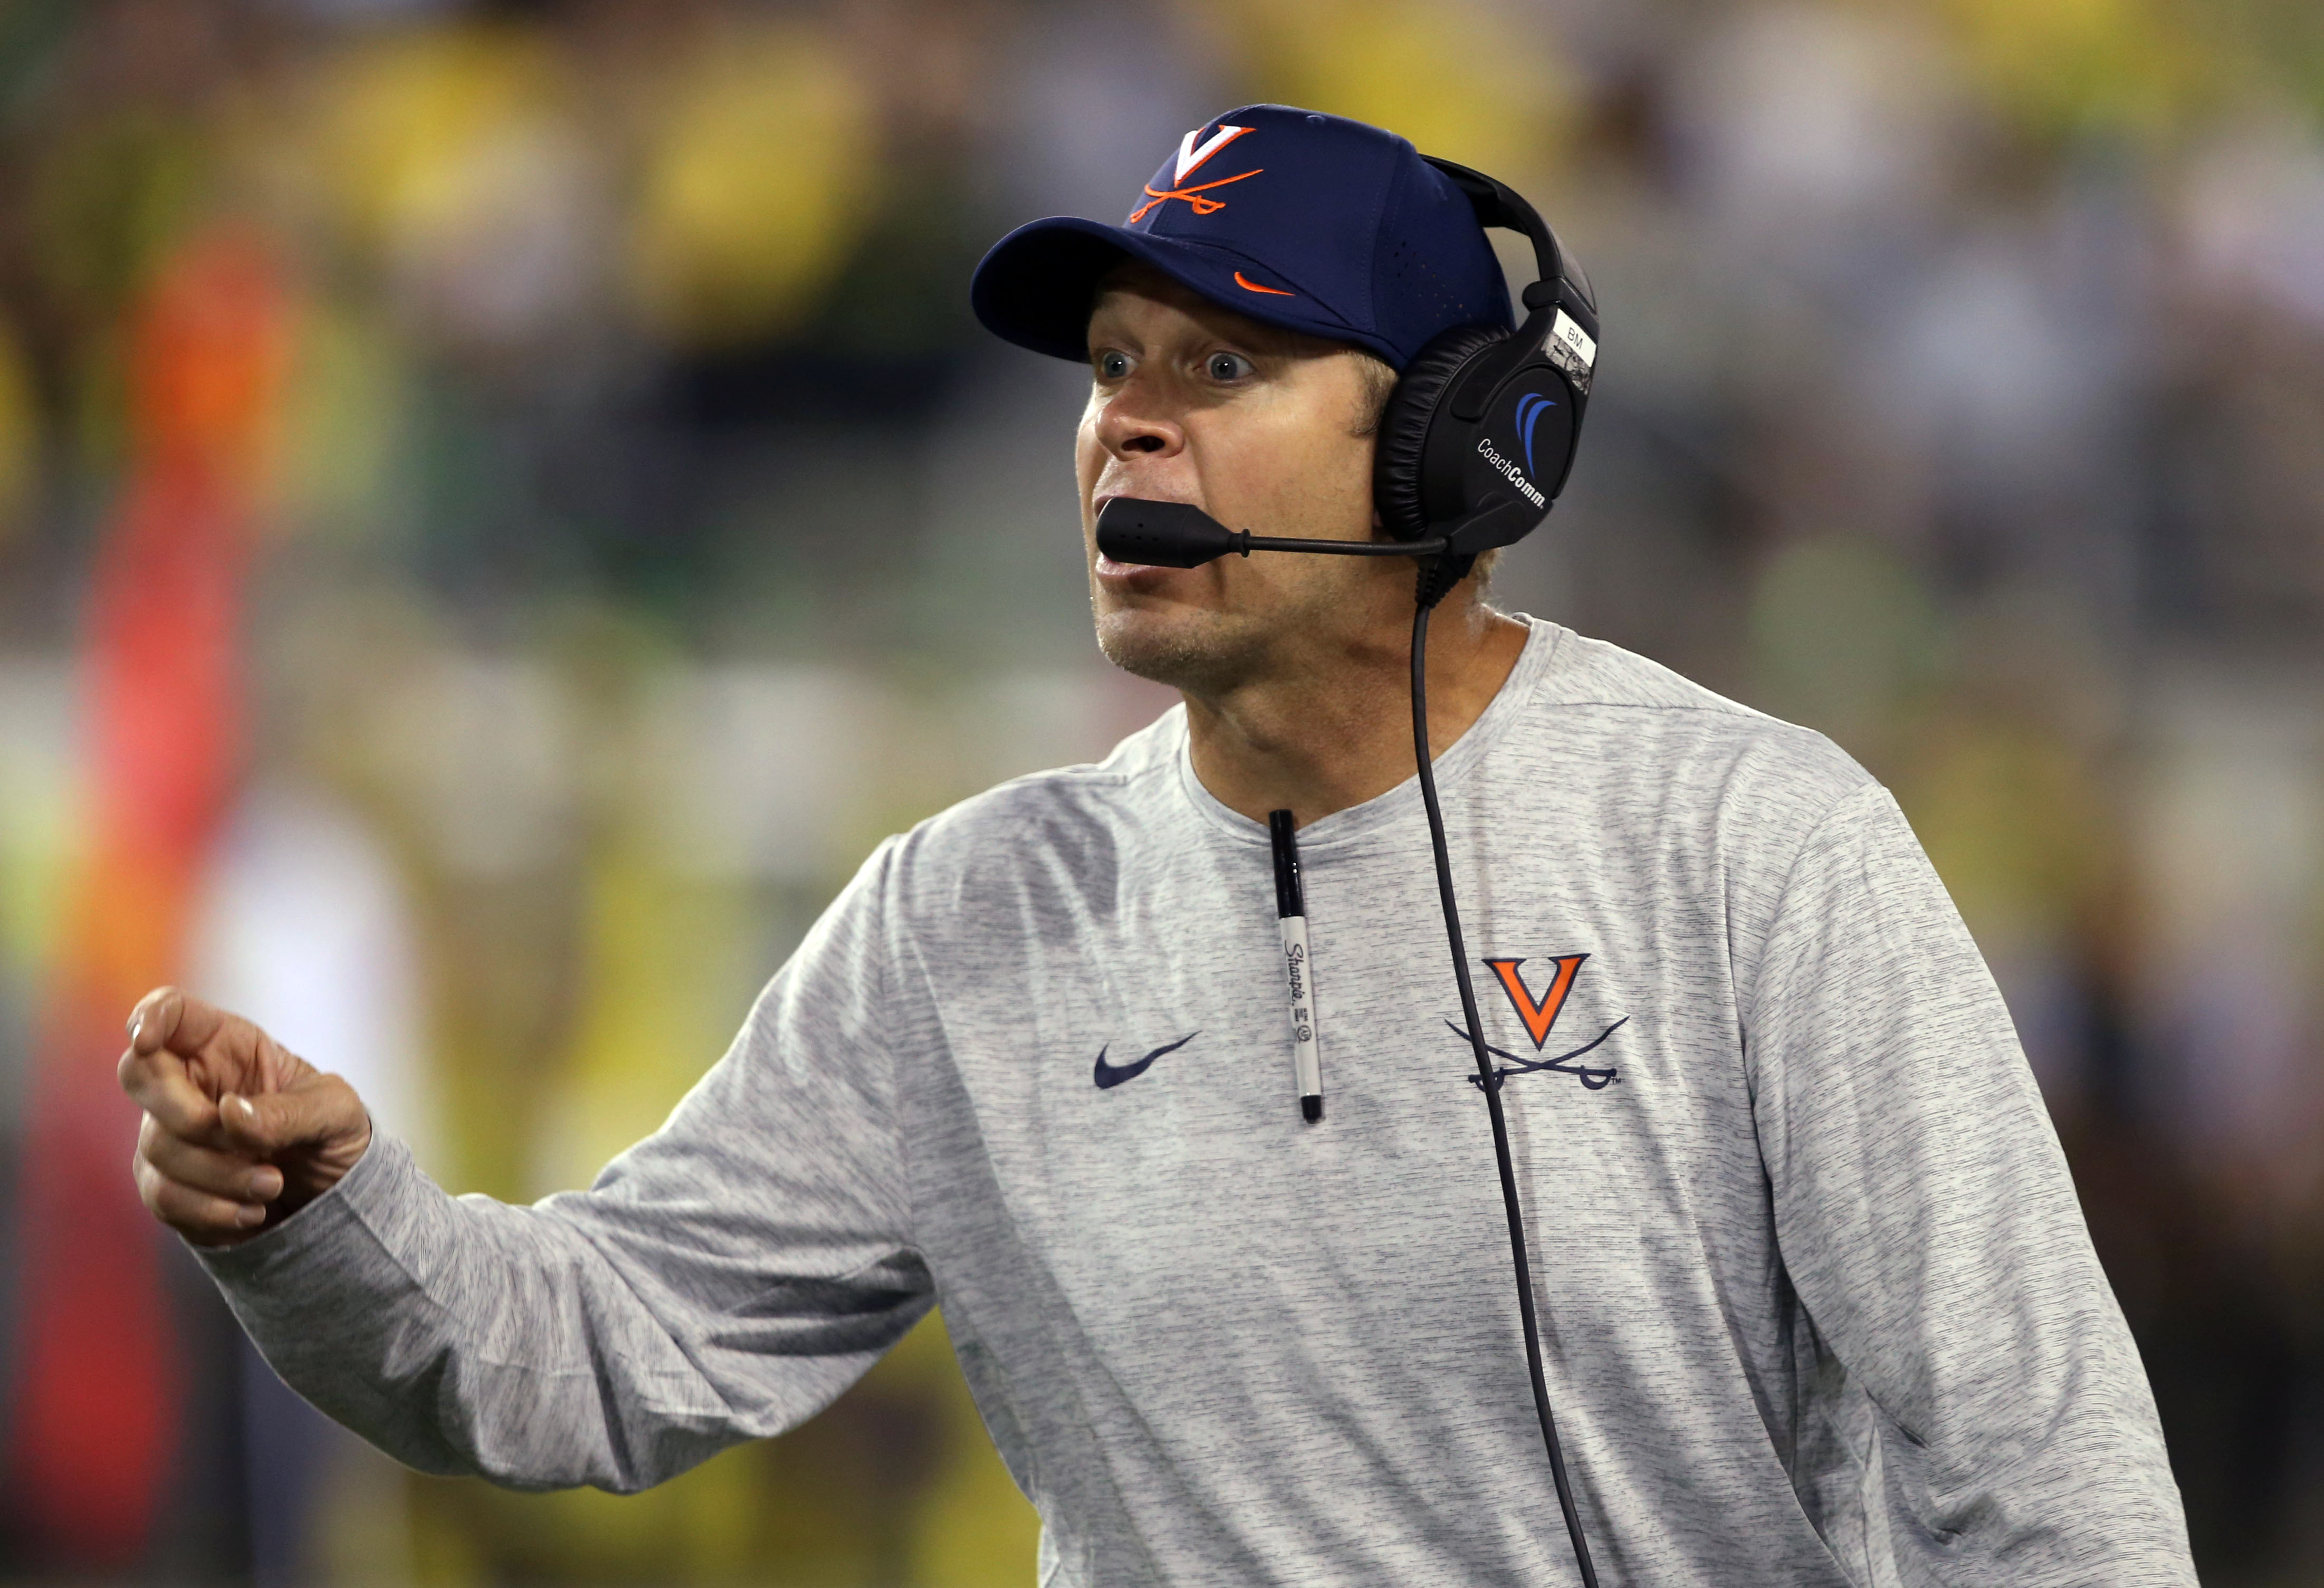 Virginia Head Football Coach Bronco Mendenhall calls to his team during the second half  of an NCAA college football game against Oregon Saturday, Sept. 10, 2016 in Eugene, Ore. (AP Photo/Chris Pietsch)